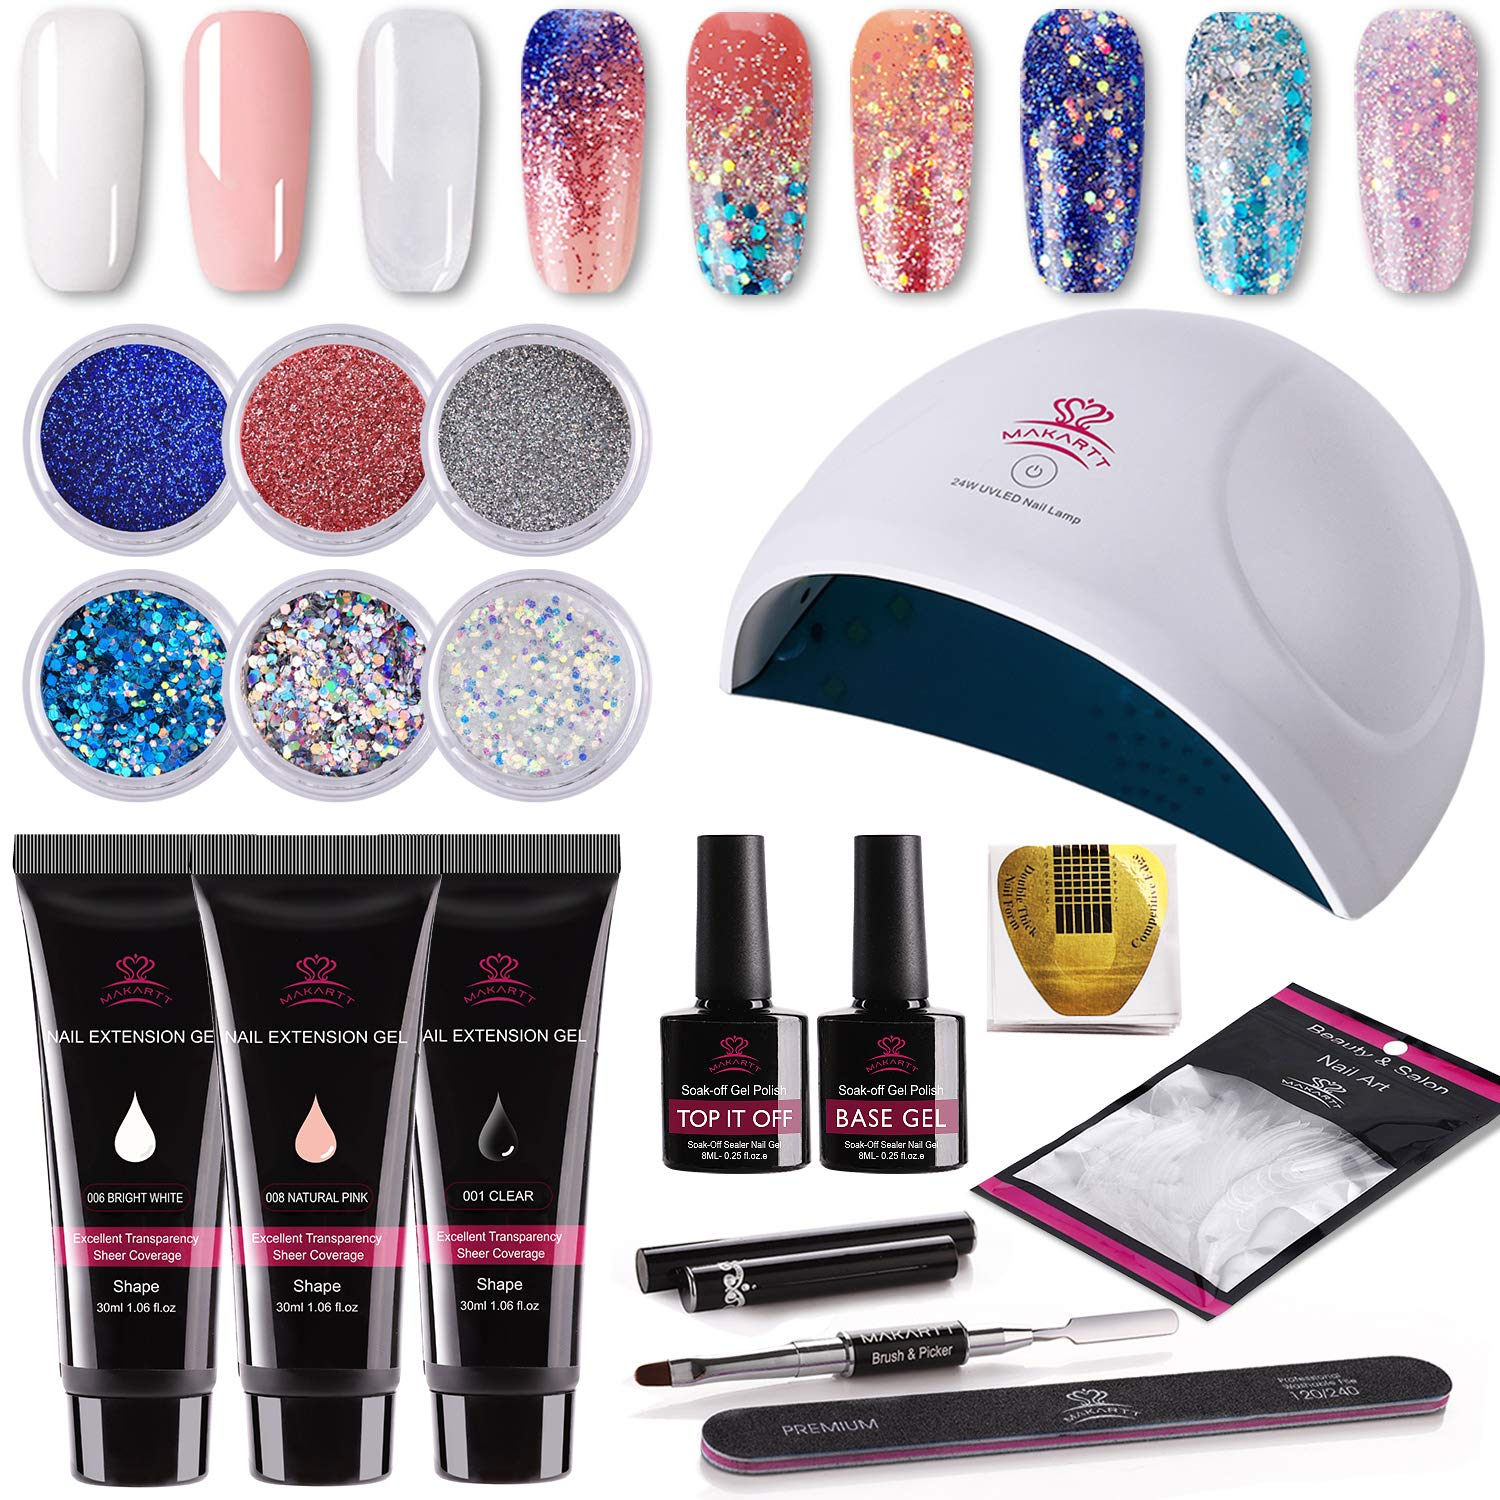 Makartt P-09 Gorgeous Poly Nail Gel Kit with 24w UV Light Starter Kit Professional Misty White Pink Extension Gel, 6pcs Glitter Powders All-In-One Dip Nail Gel Builder Manicure by Makartt